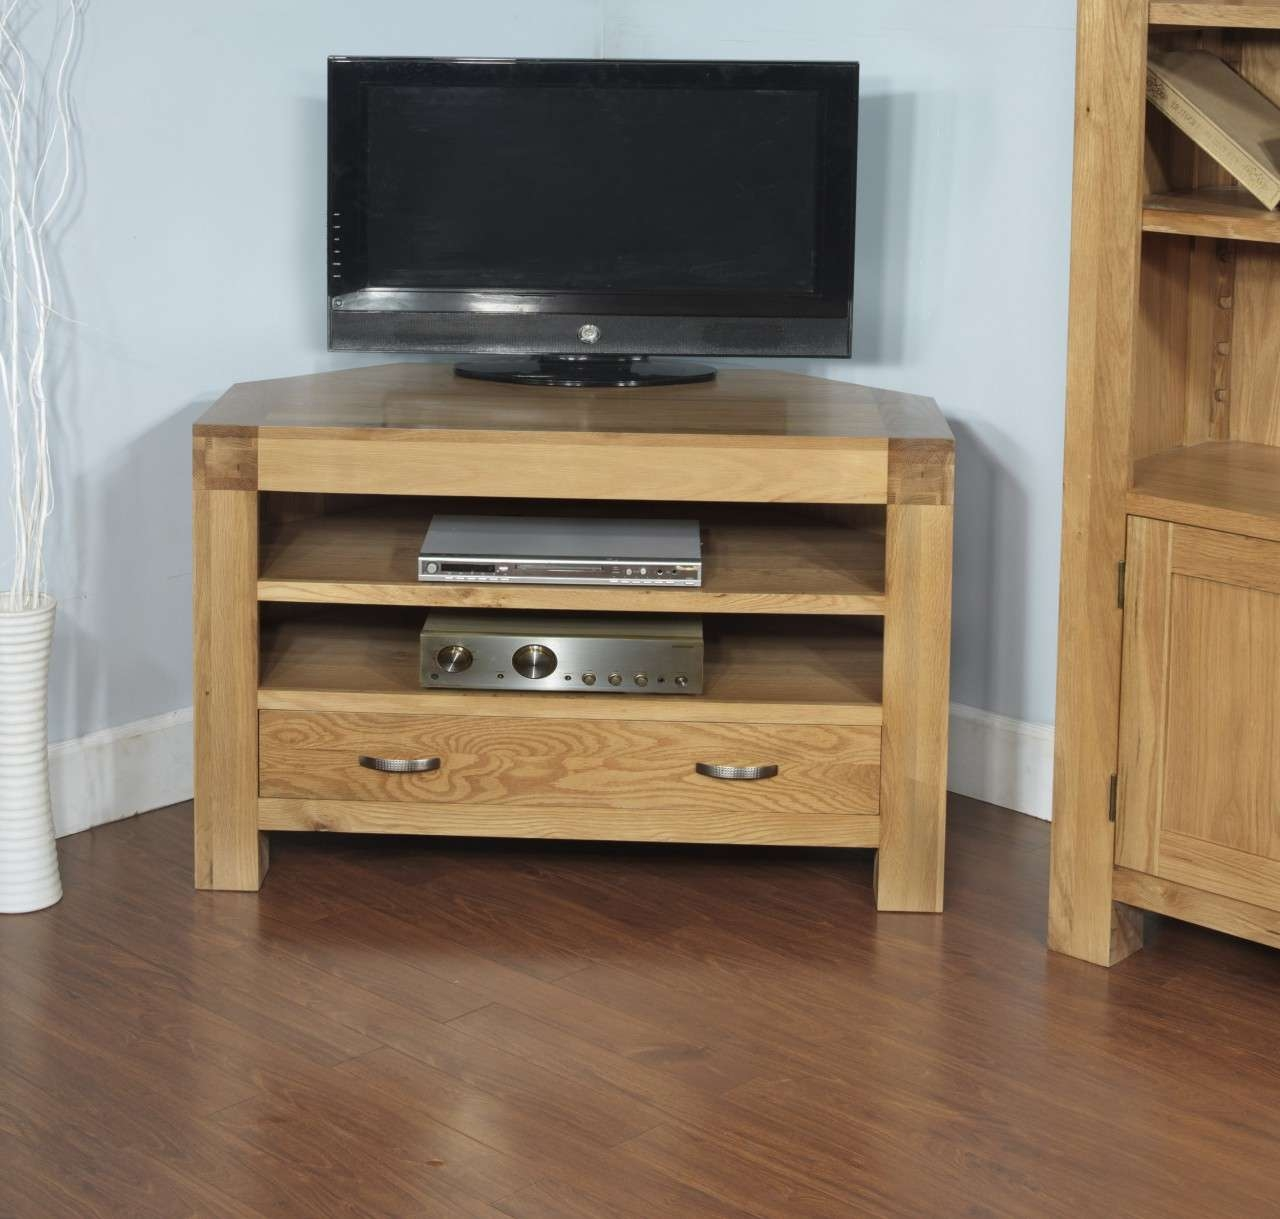 Rivermead Solid Oak Modern Furniture Widescreen Corner Tv Cabinet Throughout Contemporary Oak Tv Stands (View 8 of 15)